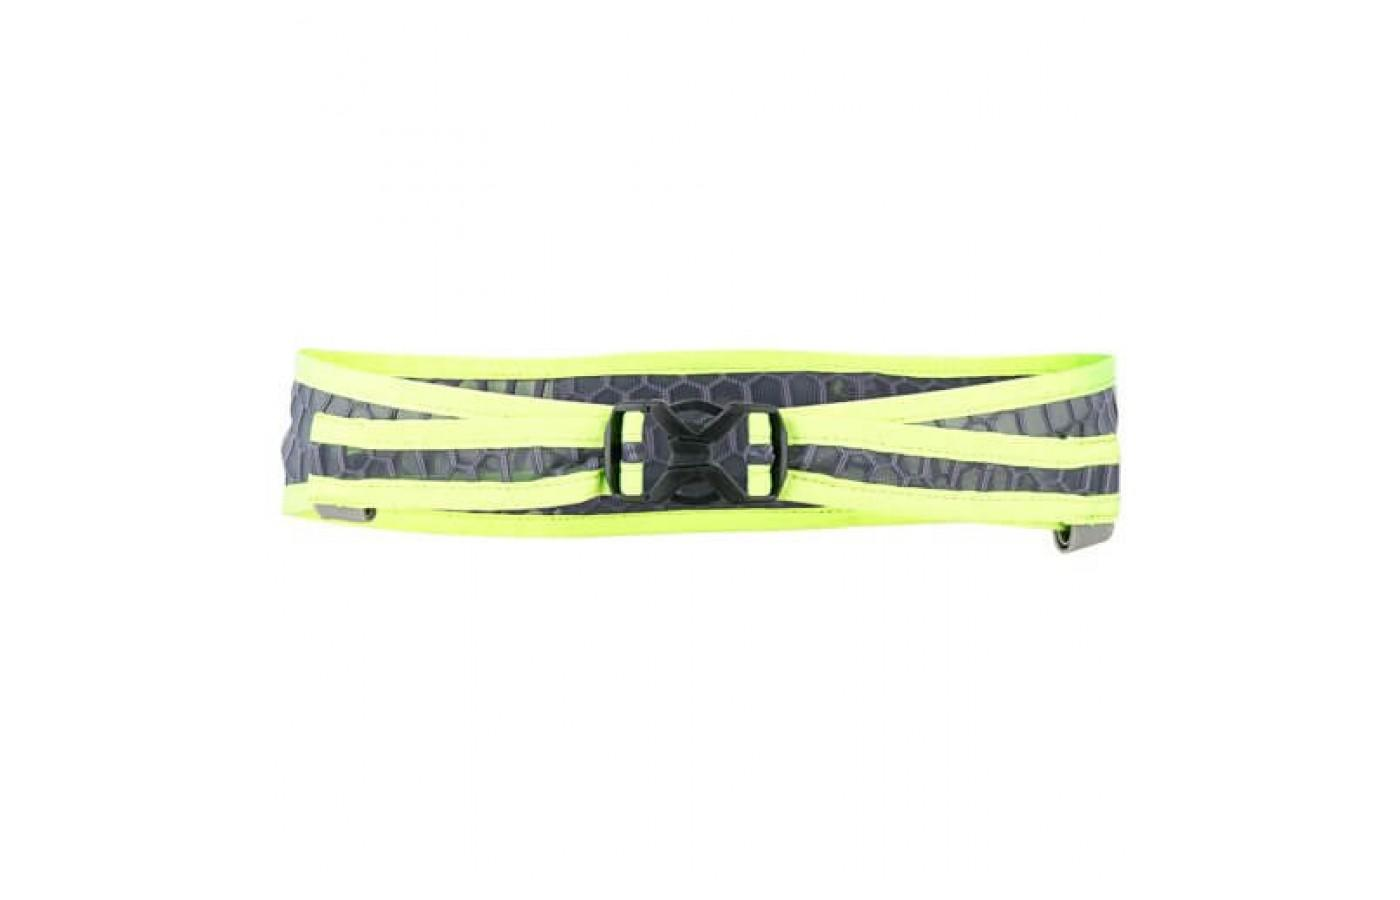 Two straps are used to secure the UltrAspire Lumen 600 to a runner's body.